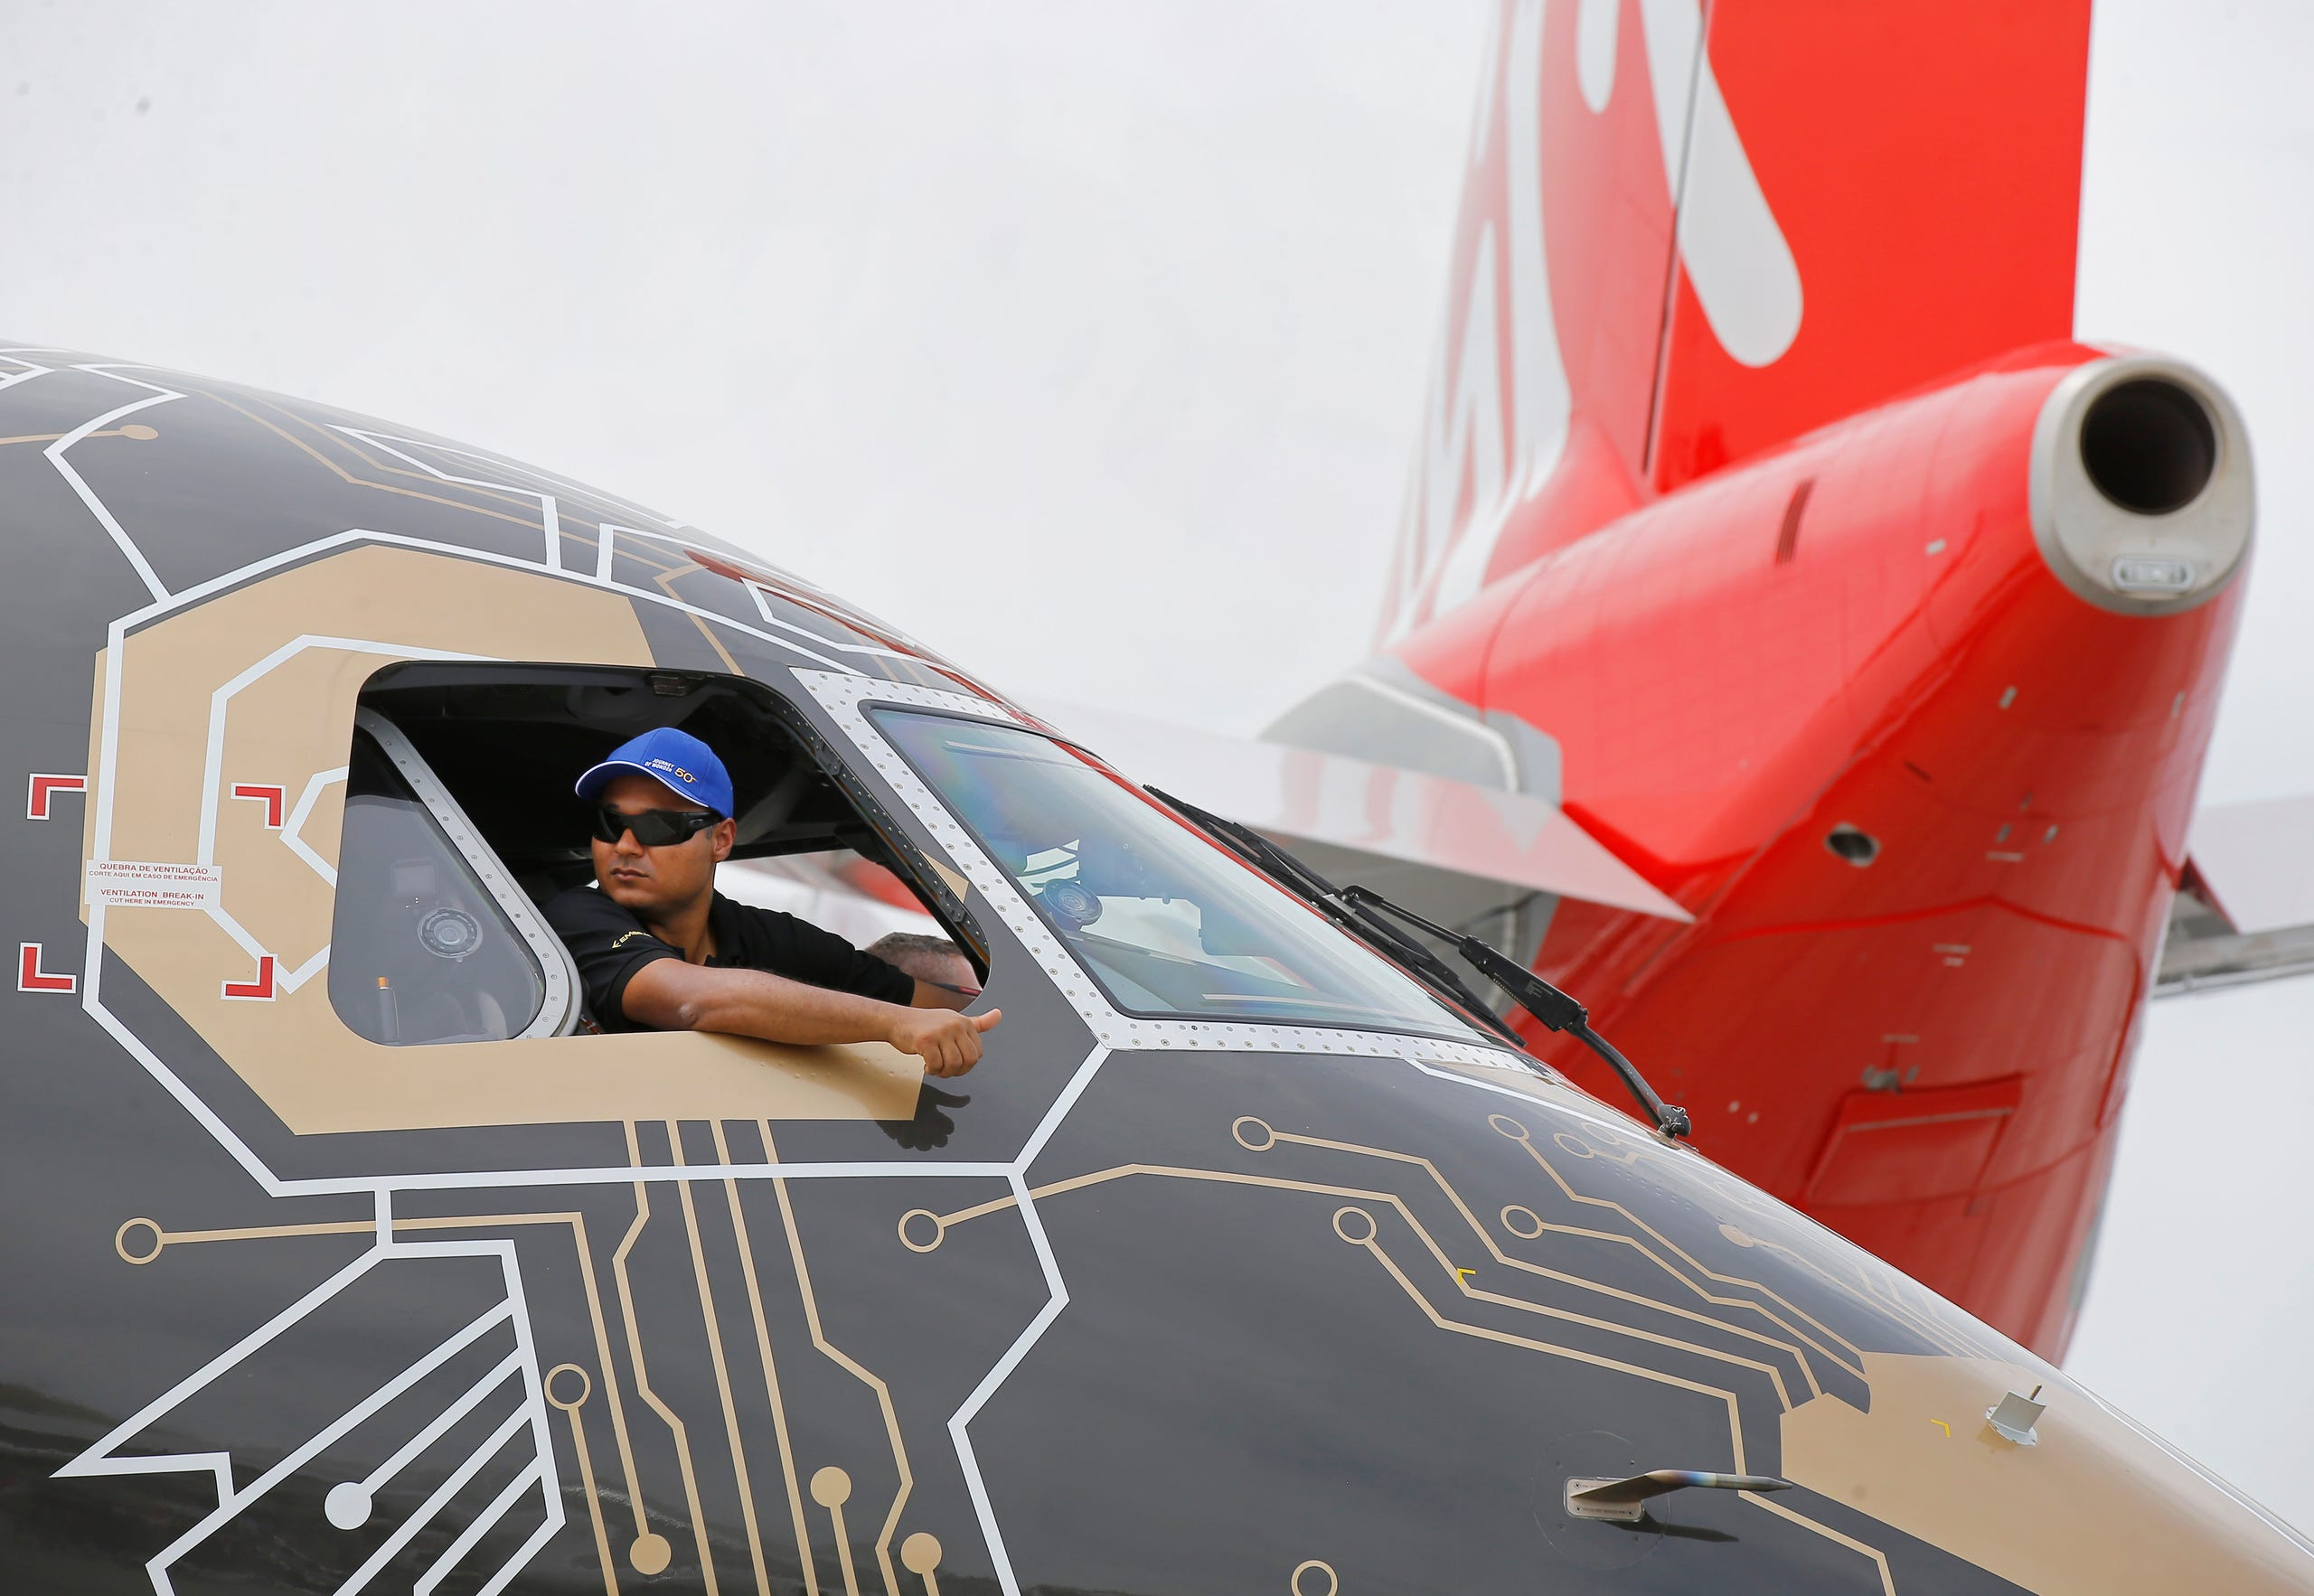 A pilot of an Embraer Profit Hunter E195-E2 makes the thumbs up sign as he on the tarmac at Paris Air Show, in Le Bourget, east of Paris, France, Tuesday, June 18, 2019. The world's aviation elite are gathering at the Paris Air Show with safety concerns on many minds after two crashes of the popular Boeing 737 Max. (AP Photo/Michel Euler) ORG XMIT: MEU110